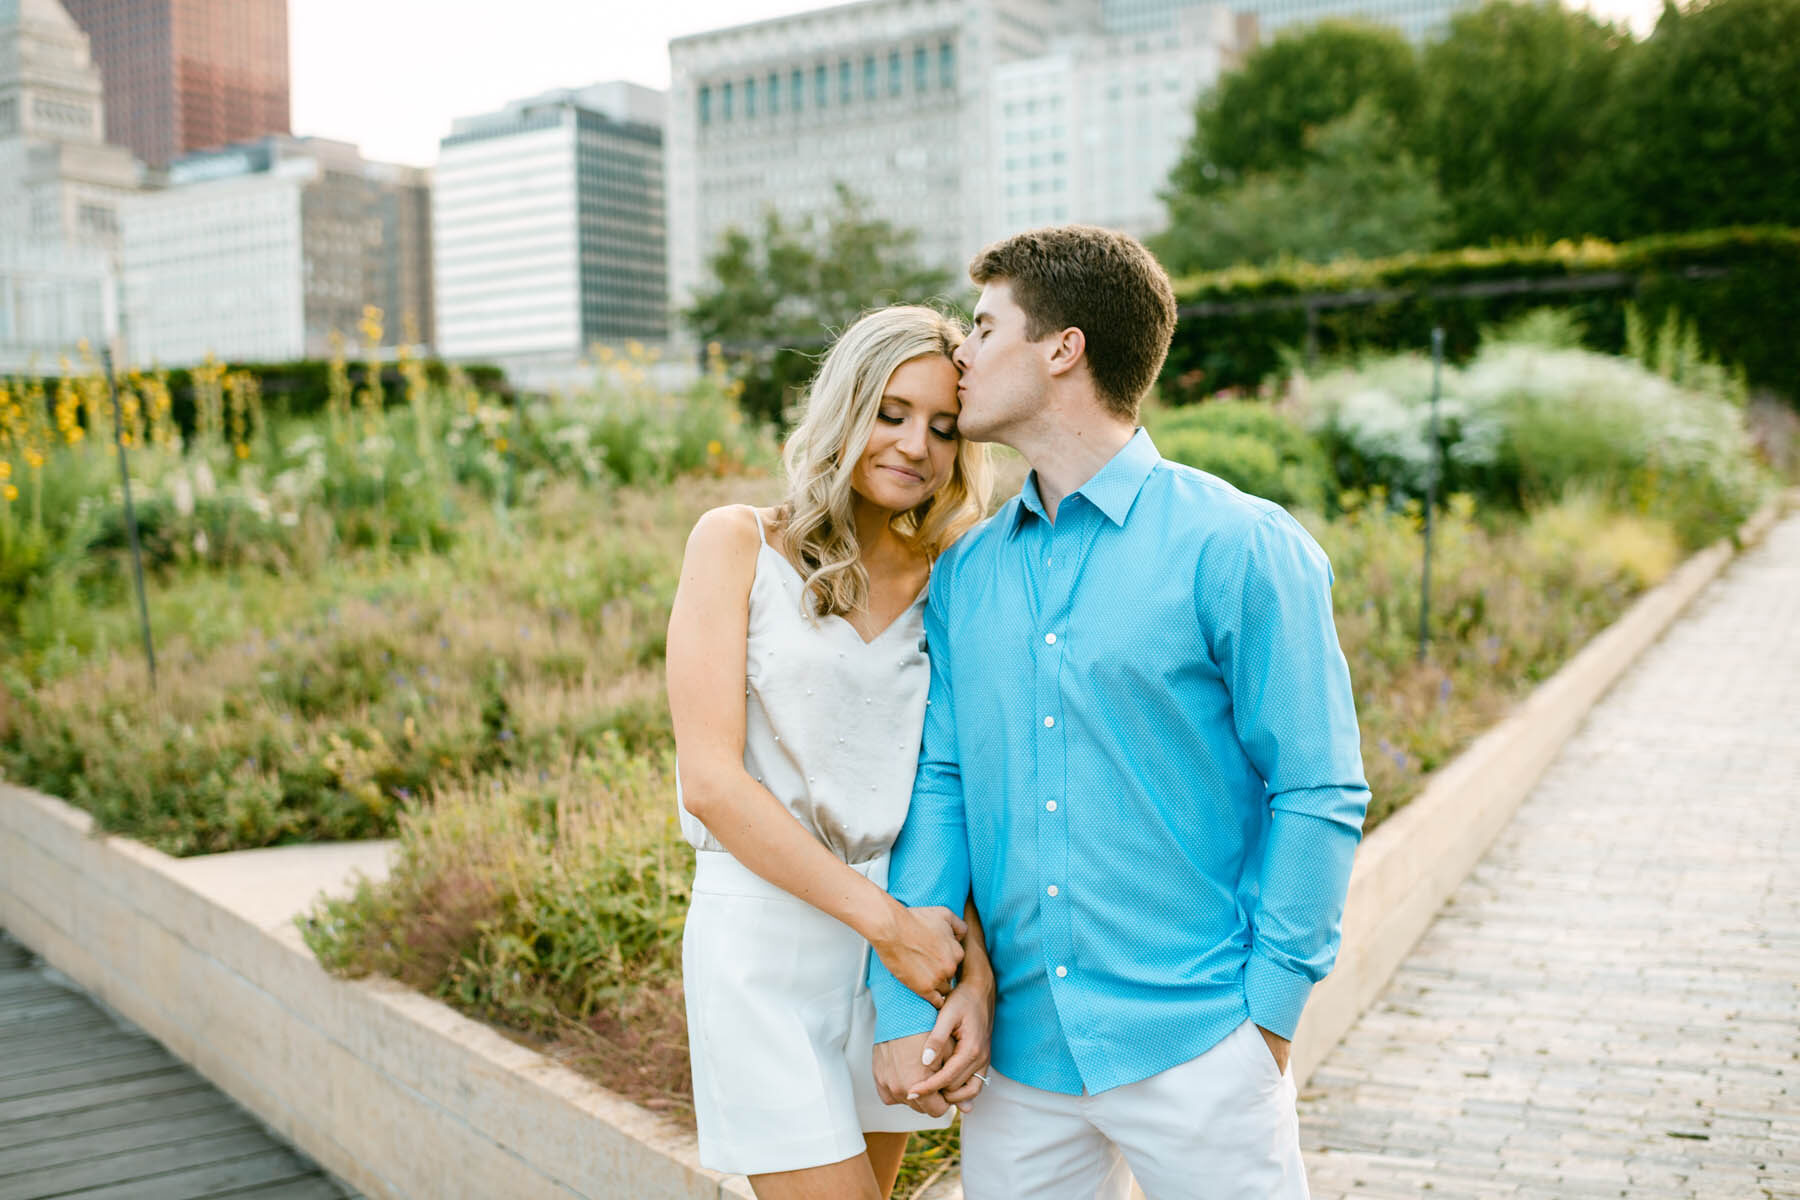 Best Chicago Engagement Locations